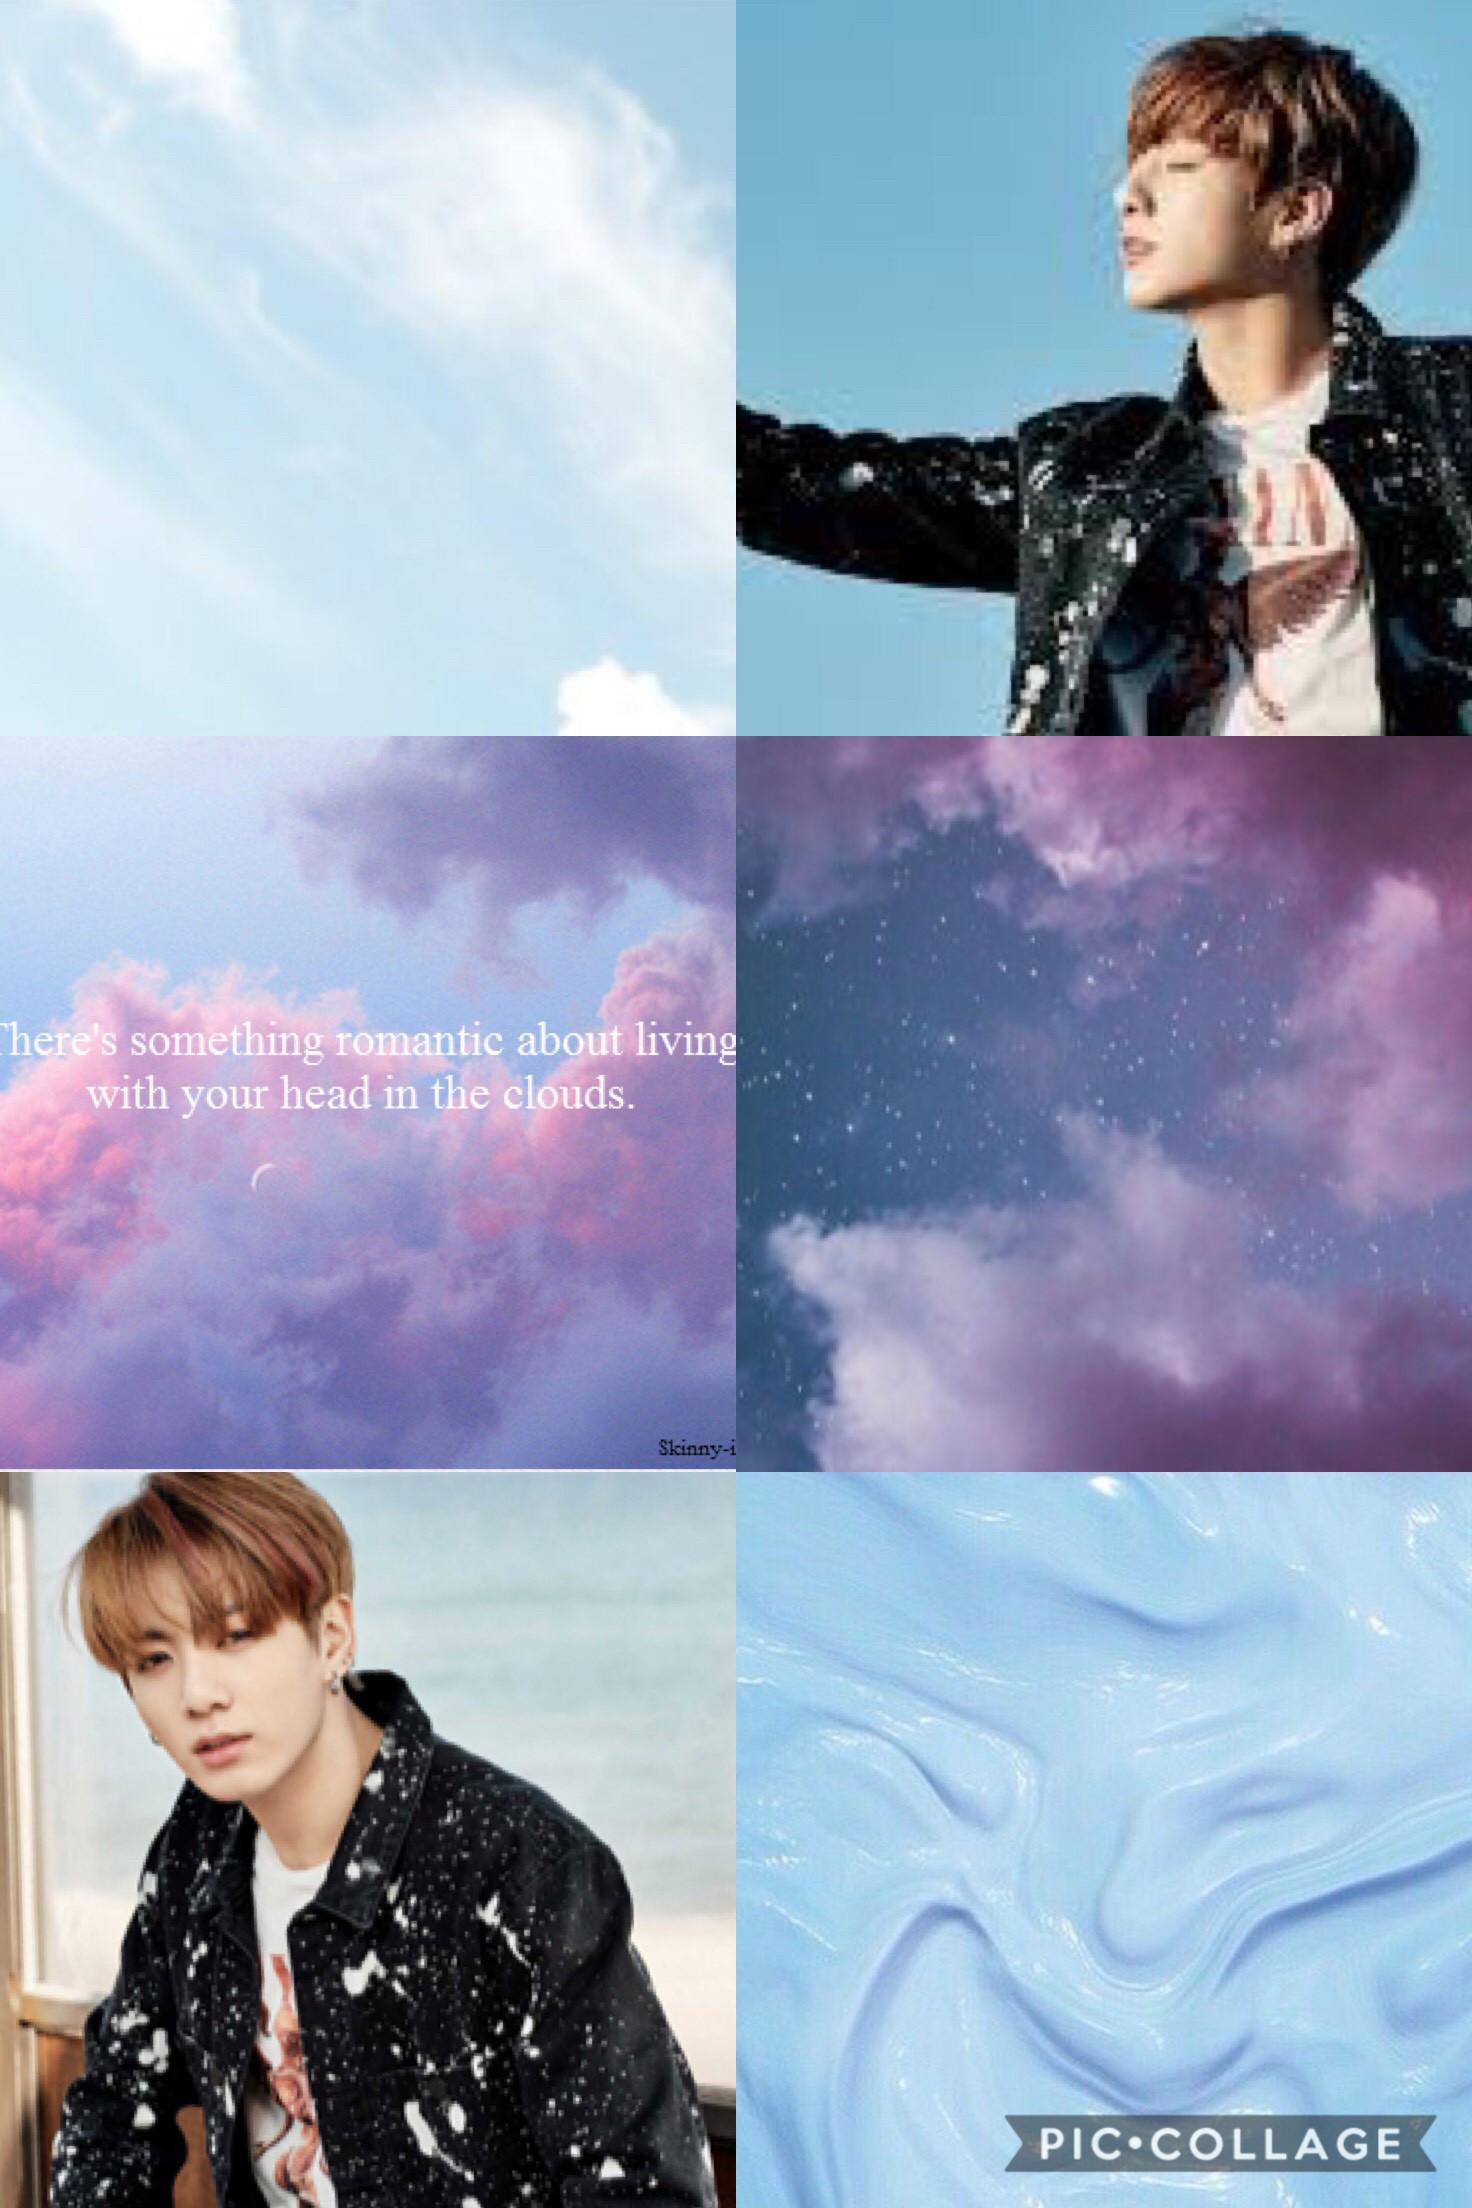 bts aesthetic hd wallpapers